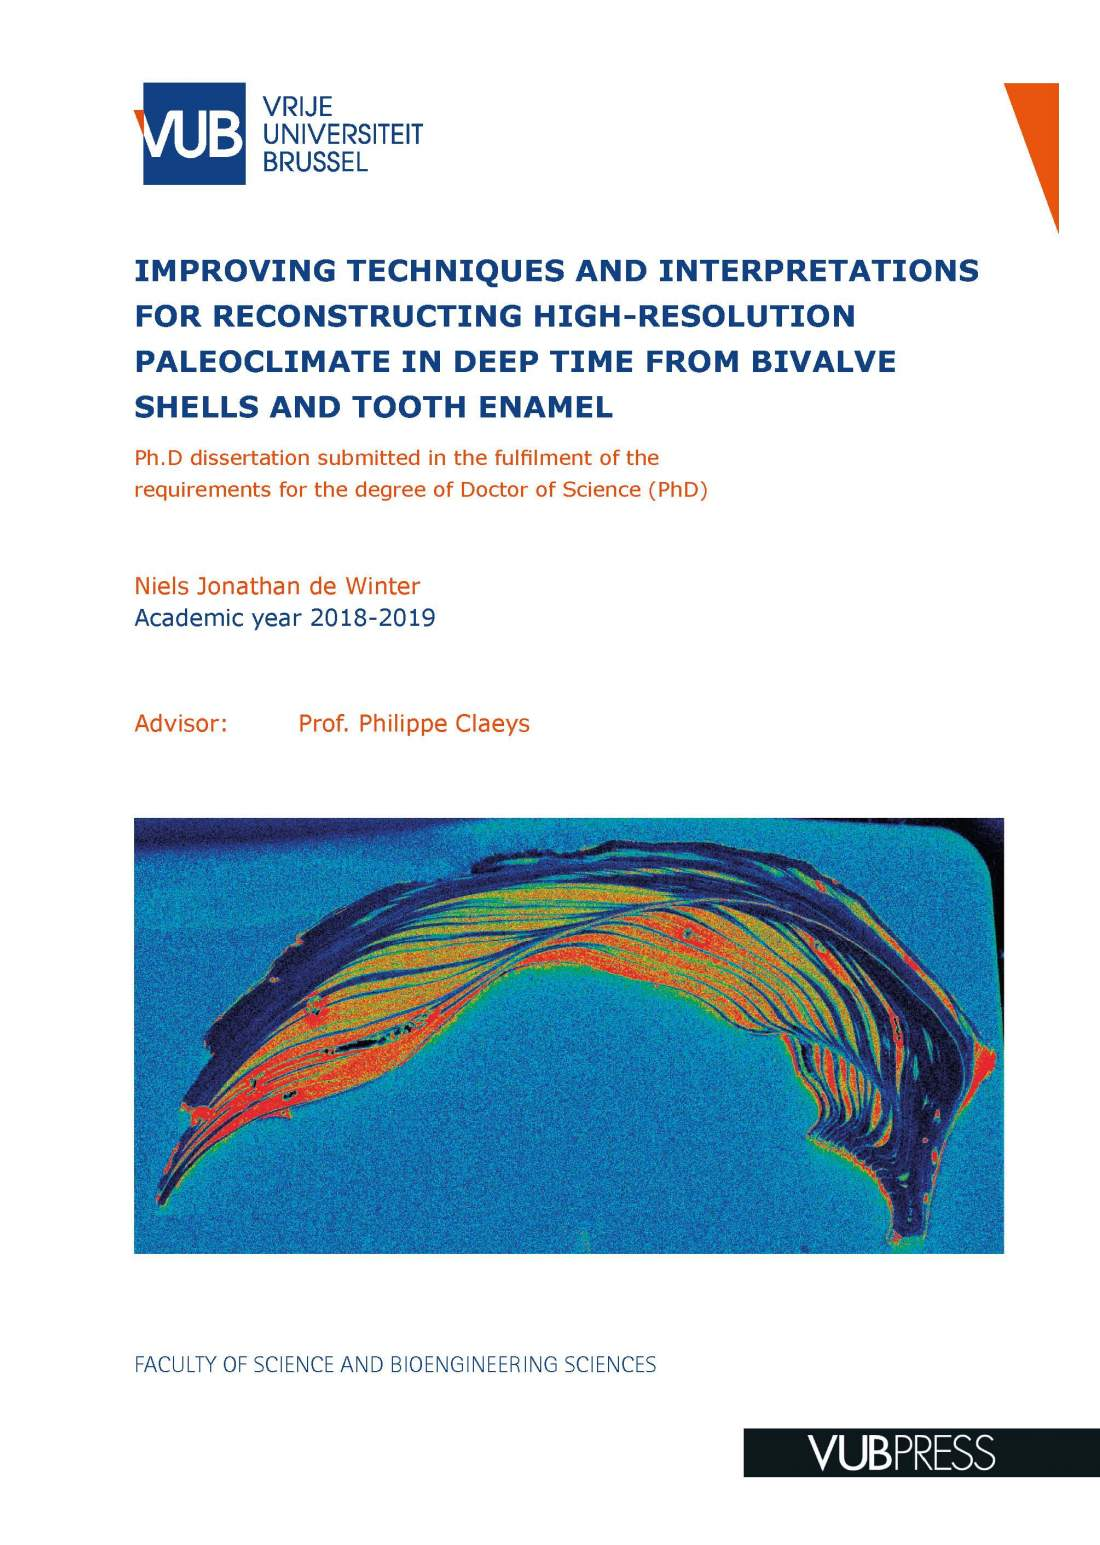 IMPROVING TECHNIQUES AND INTERPRETATIONS FOR RECONSTRUCTING HIGH-RESOLUTION PALEOCLIMATE IN DEEP TIME FROM BIVALVE SHELLS AND TOOTH ENAMEL (pdf)